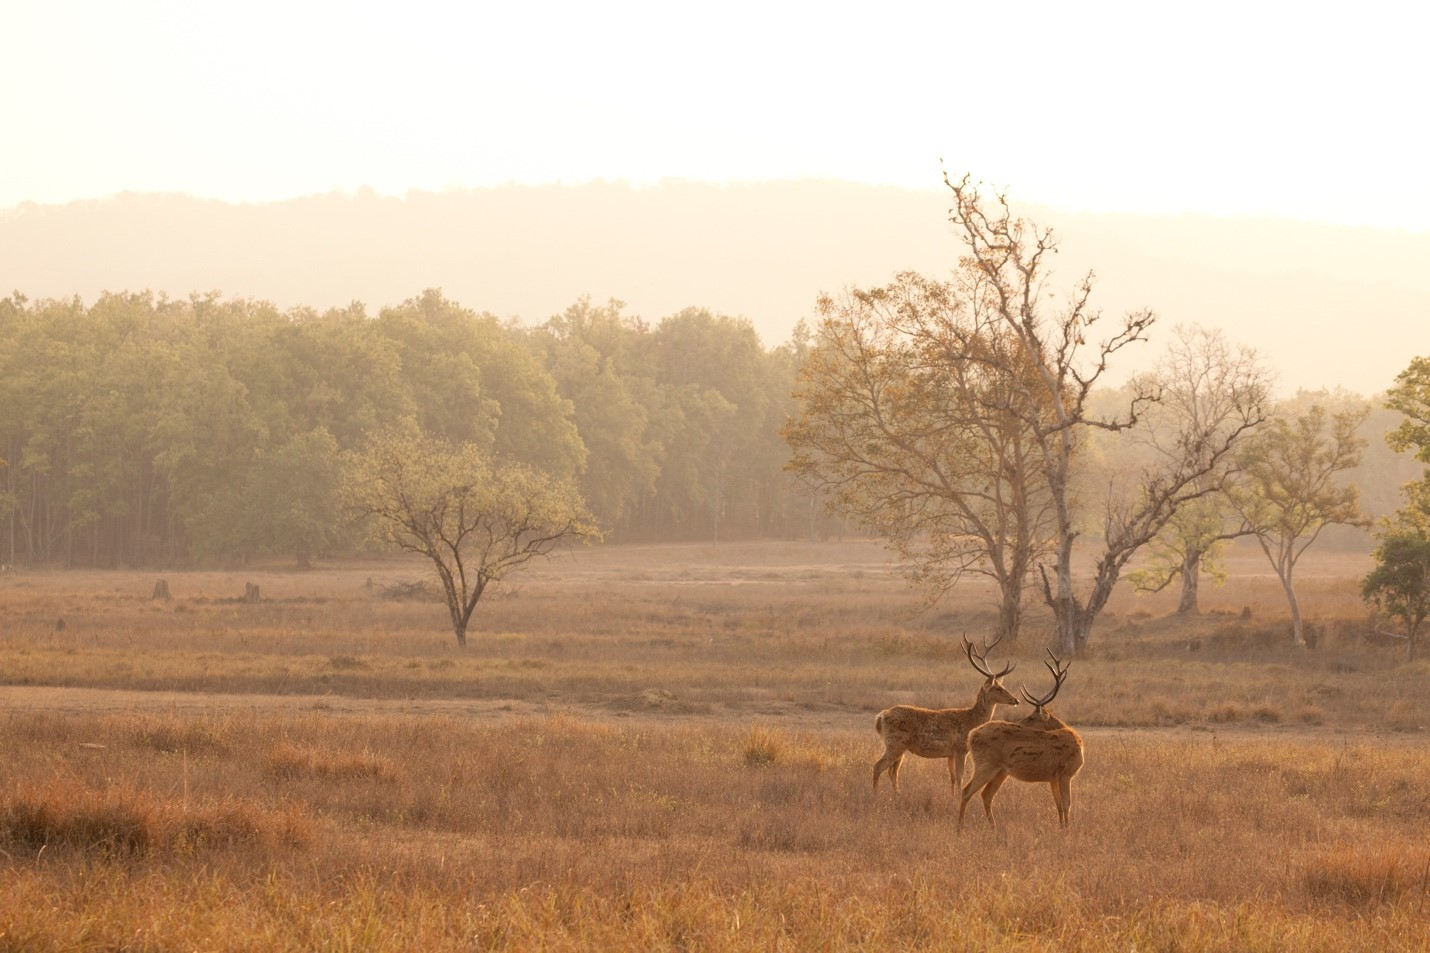 two male deer look picturesque in the landscape of kanha national park, india